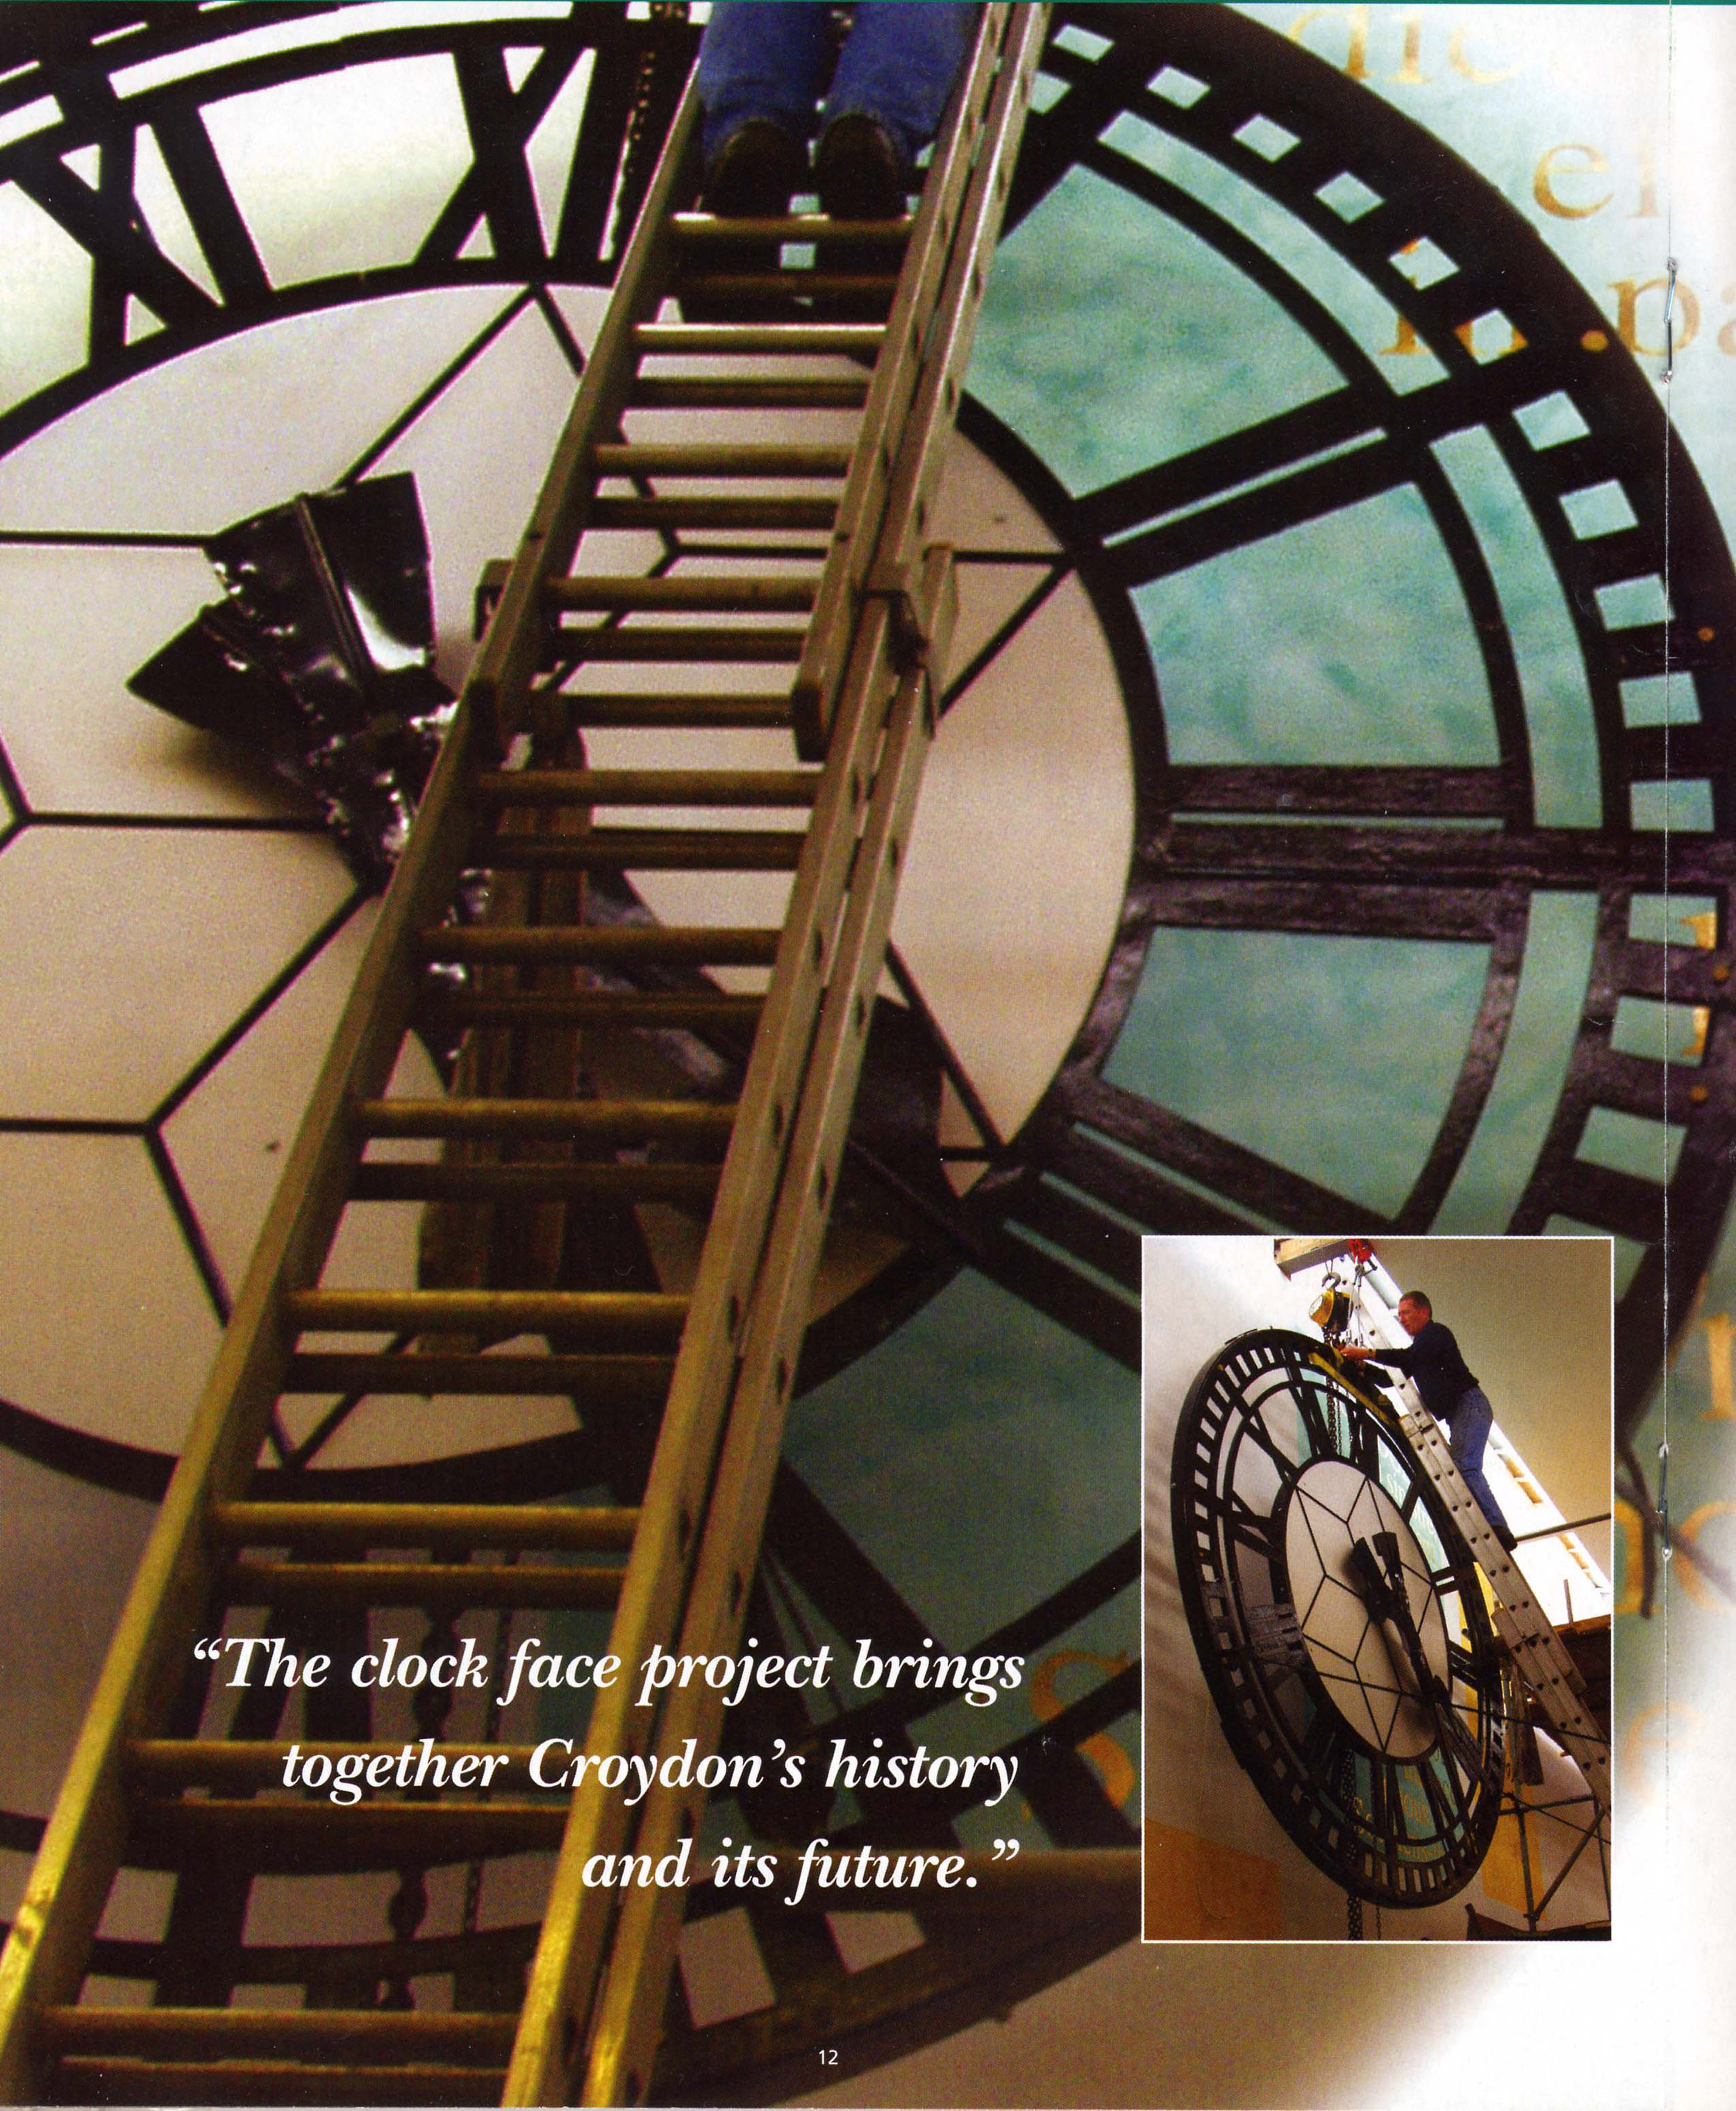 the clock face and the french text